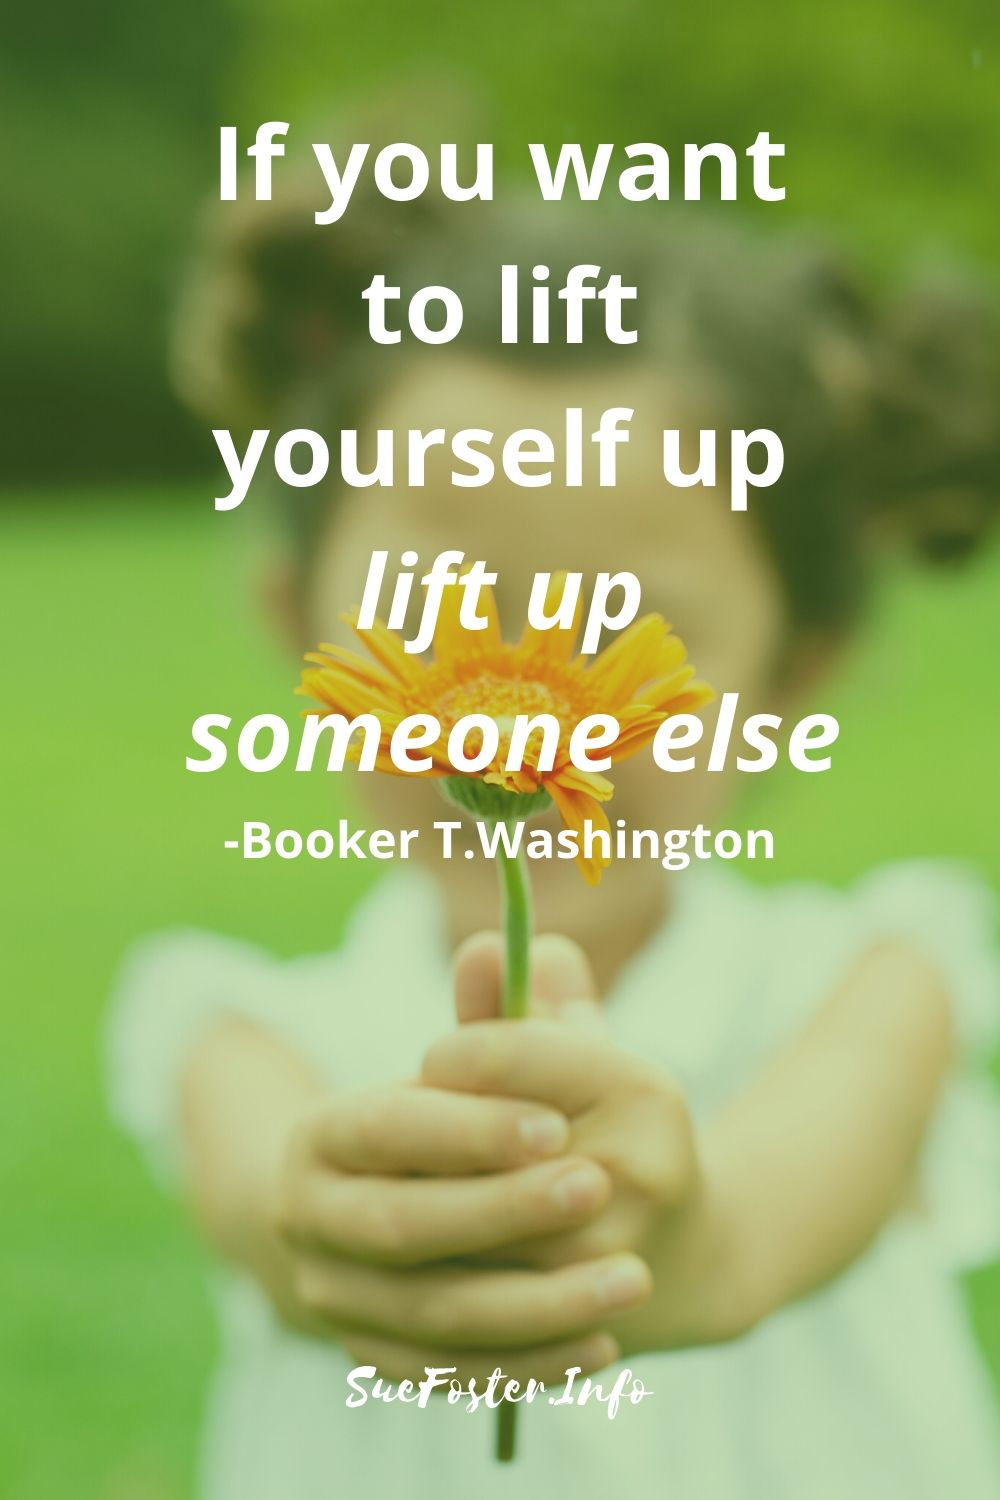 If you want to lift yourself up lift up someone else.